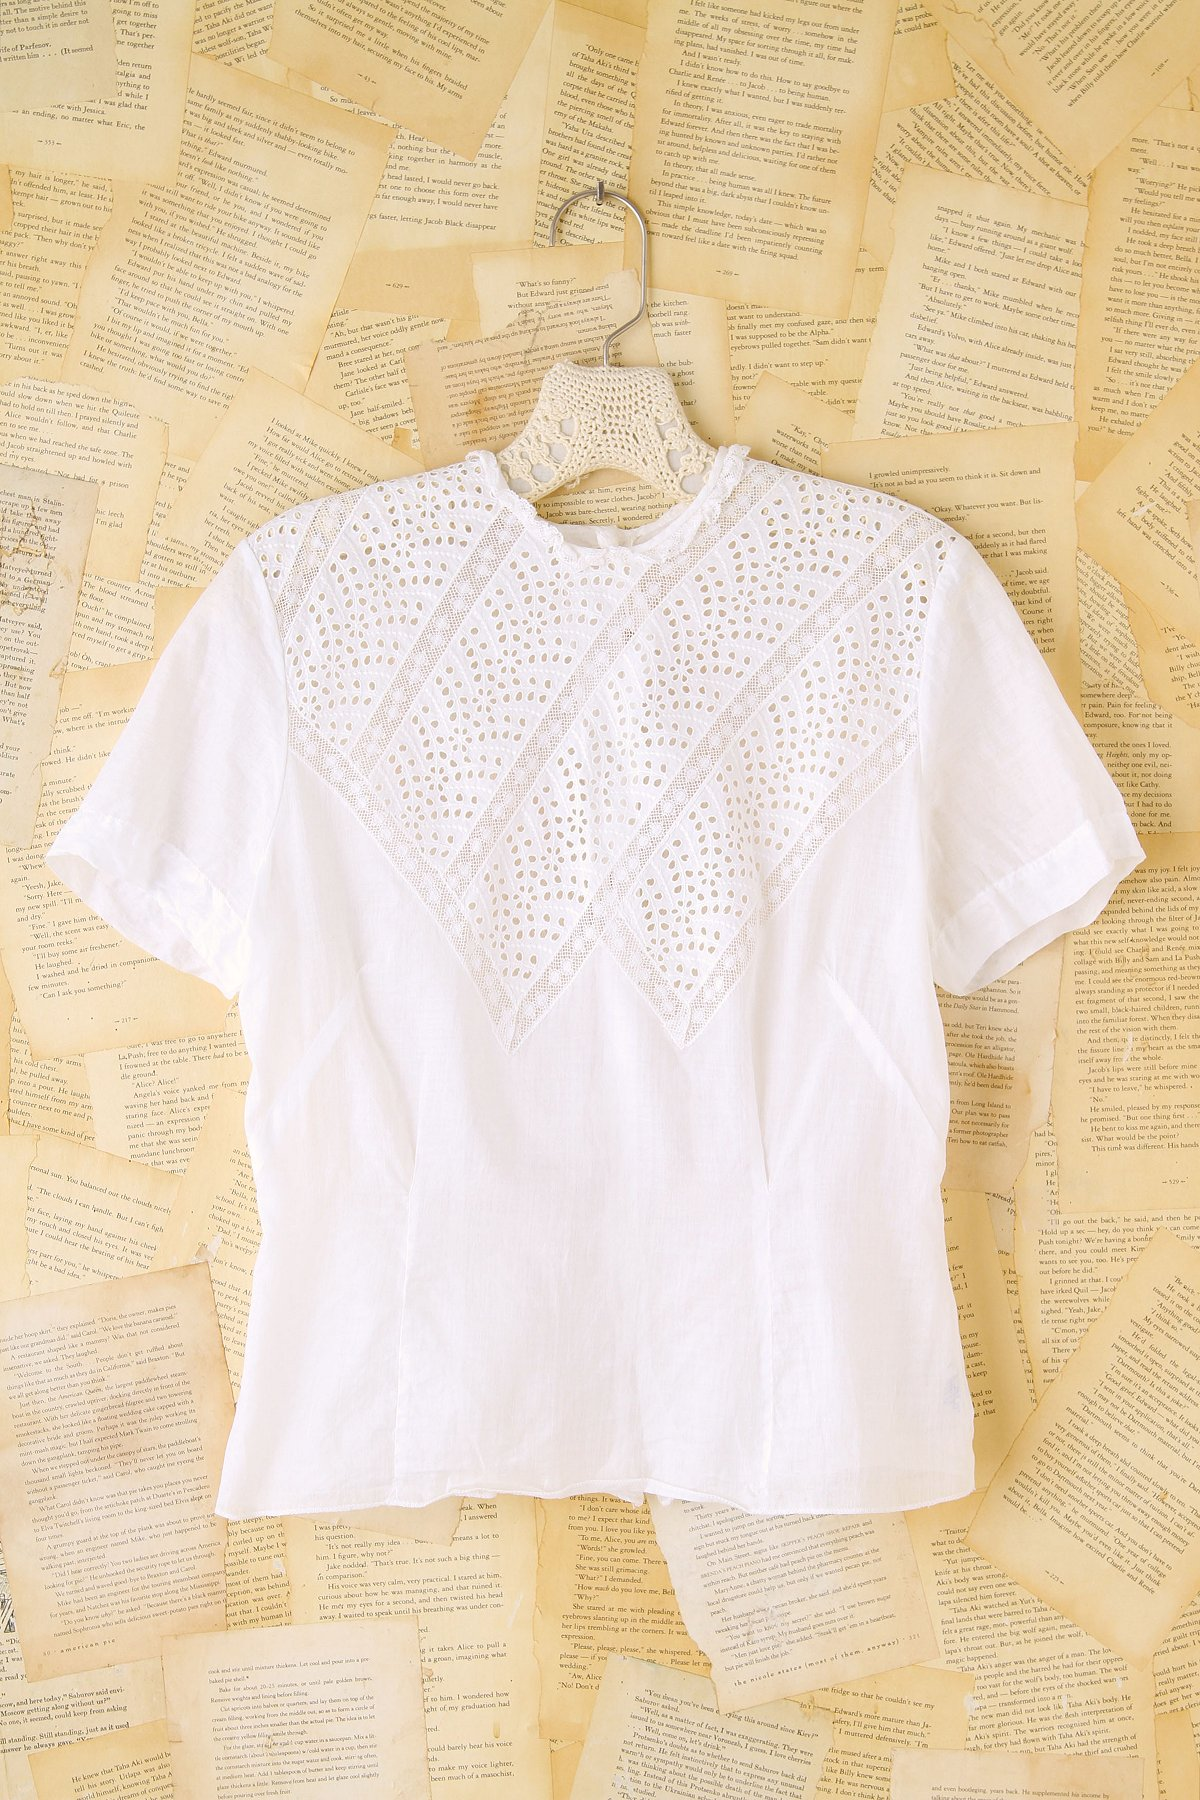 Vintage Eyelet and Lace Top